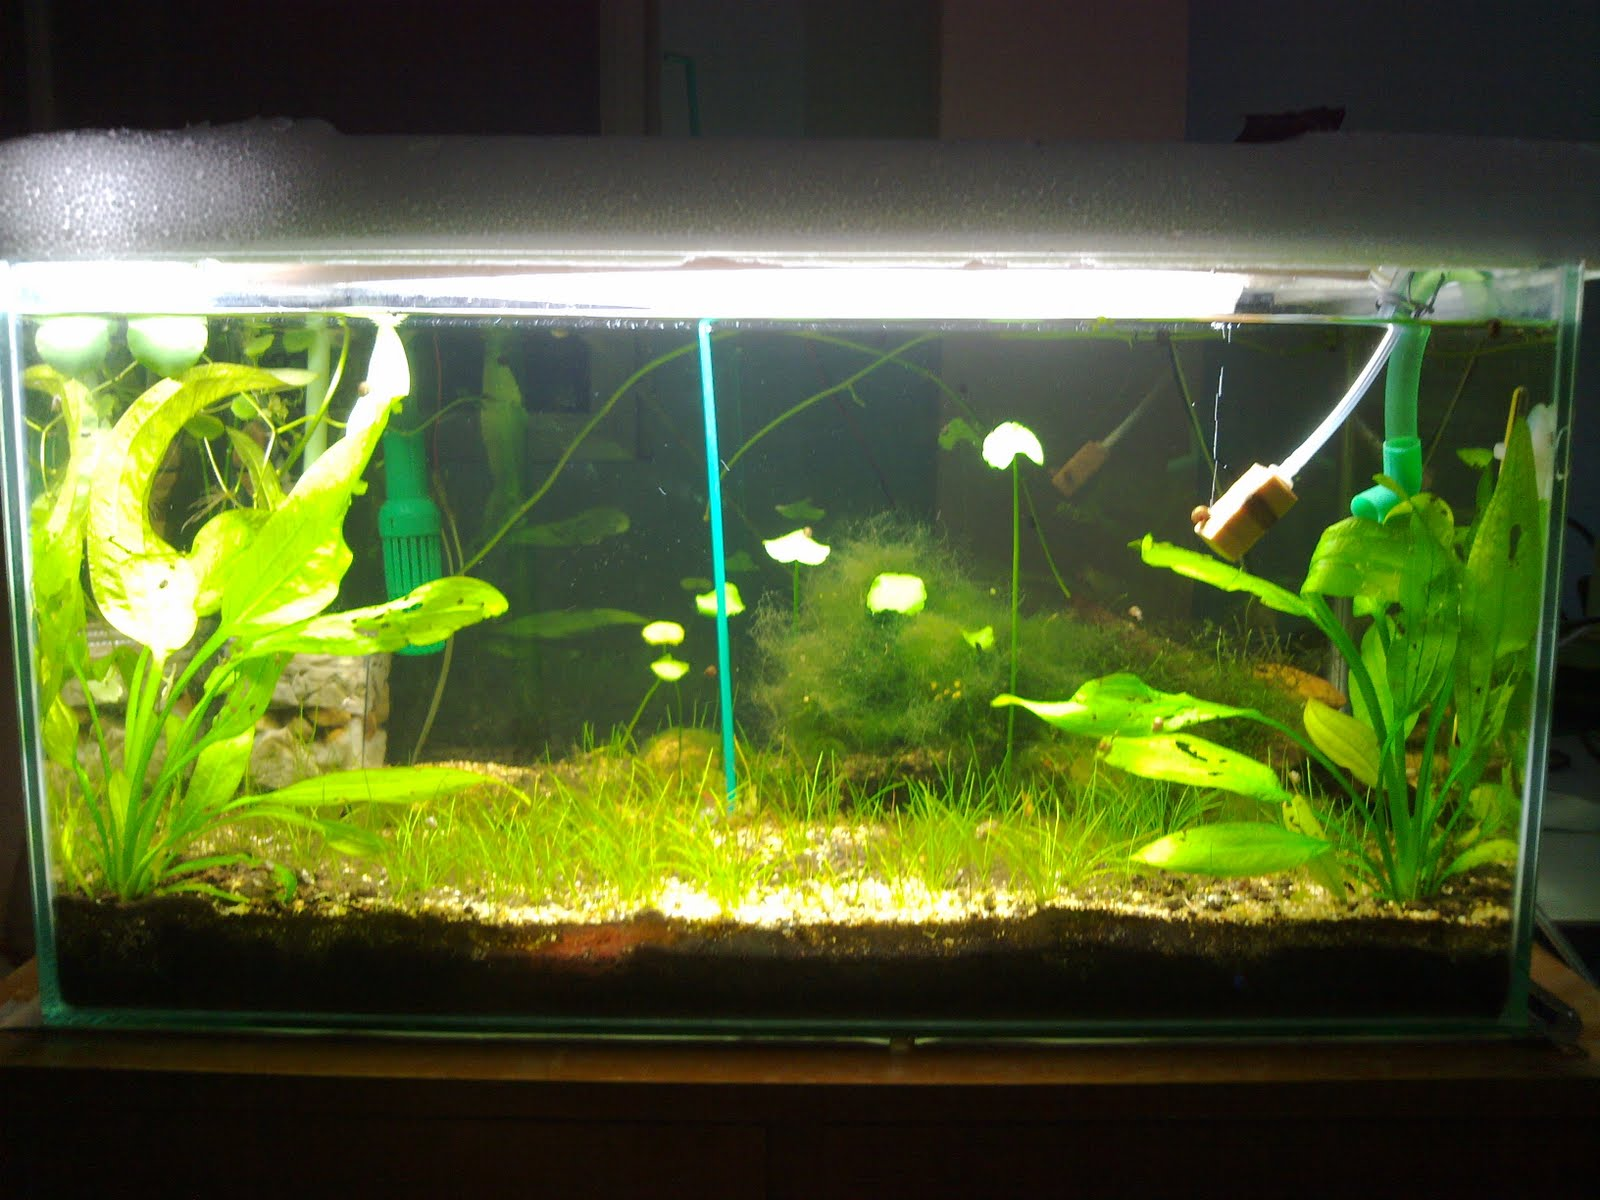 Foo aquariums kuching my shrimp like spinach for Shrimp fish tank